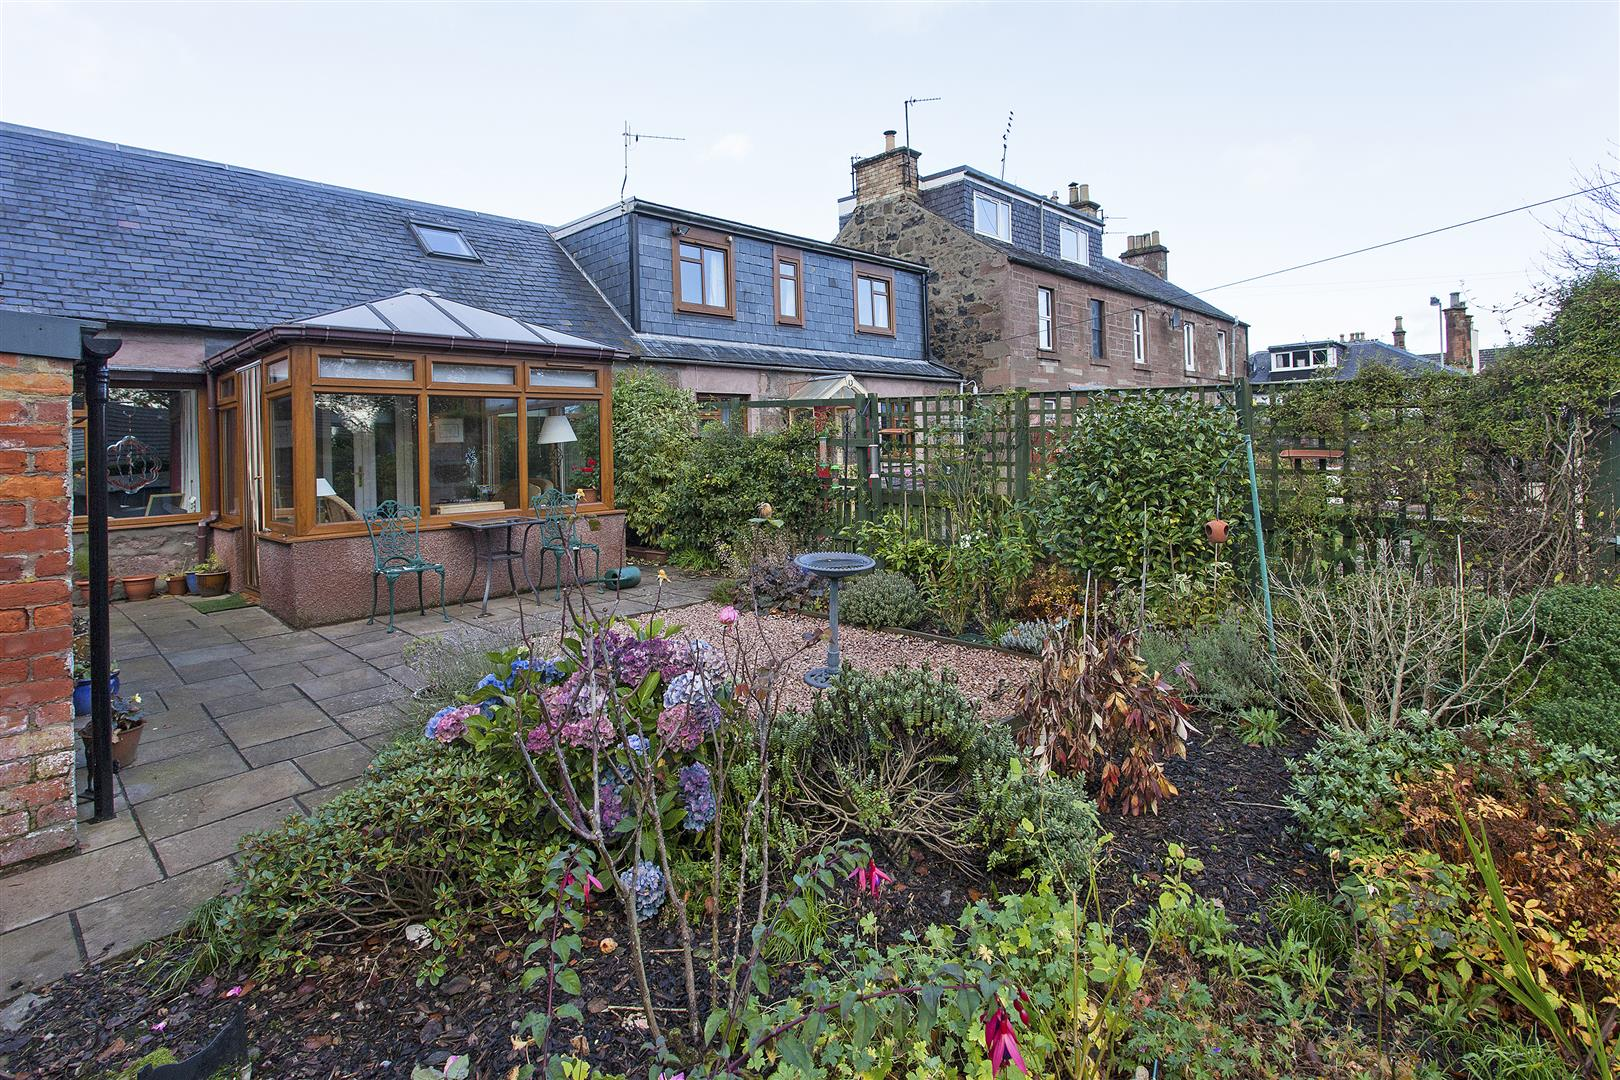 Forebank Cottage West, South Street, Rattray, Blairgowrie, Perthshire, PH10 7BY, UK